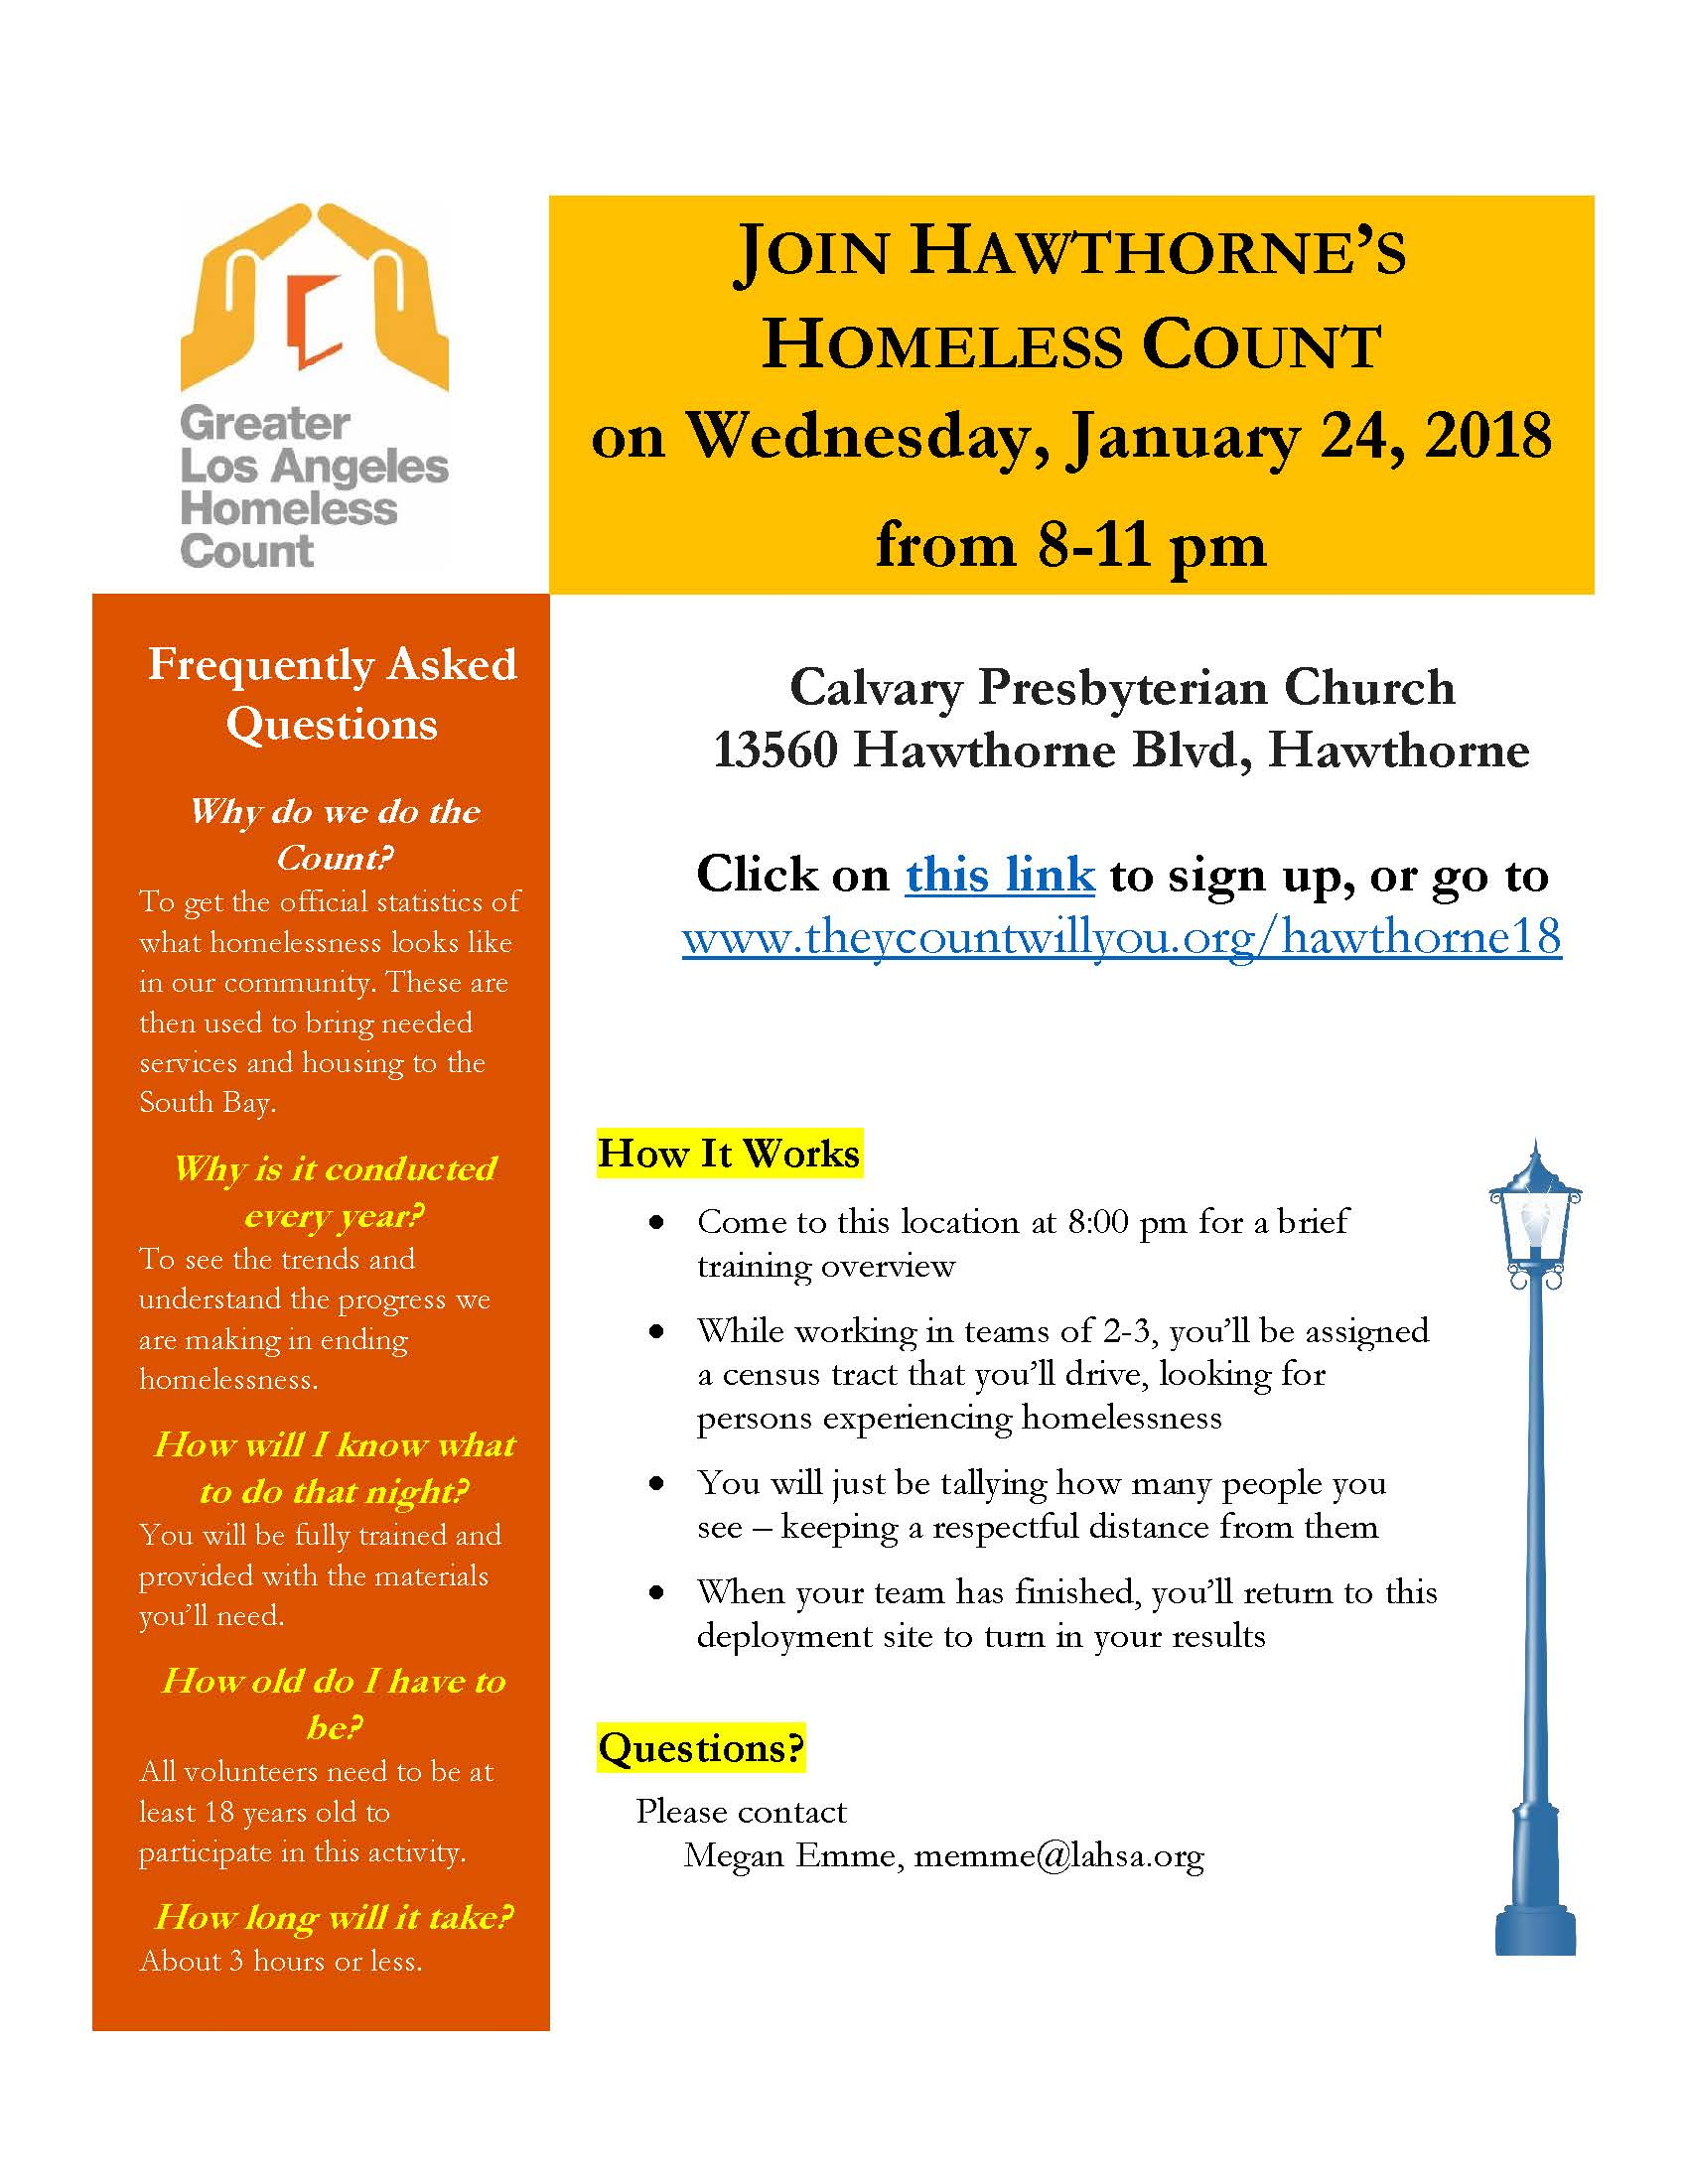 Join Hawthorne's Homeless Count